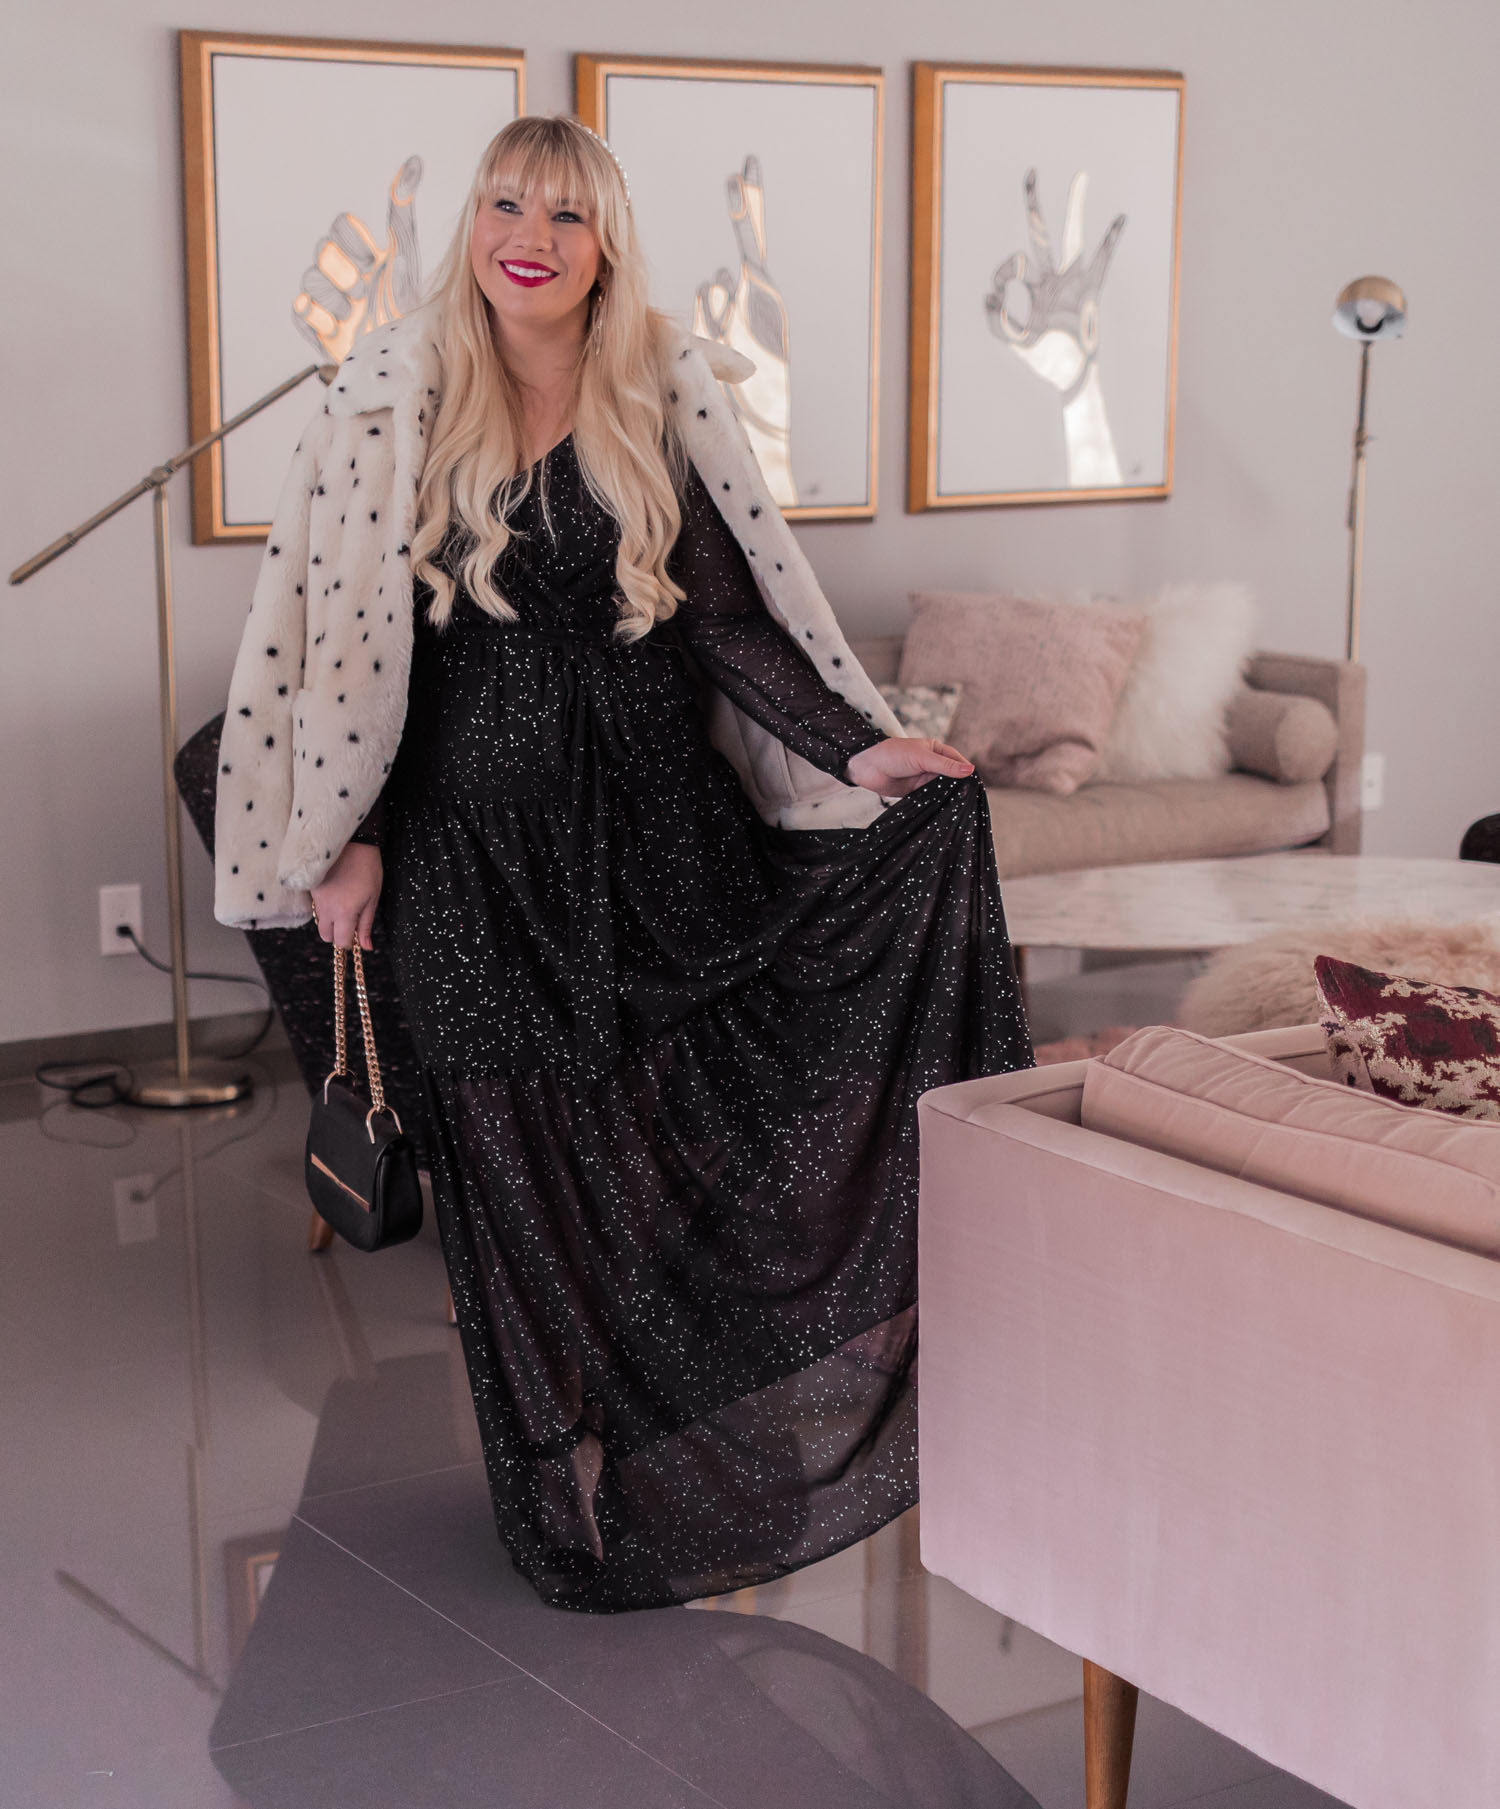 Elizabeth Hugen of Lizzie in Lace shares a feminine holiday outfit idea featuring a black sparkly maxi dress.